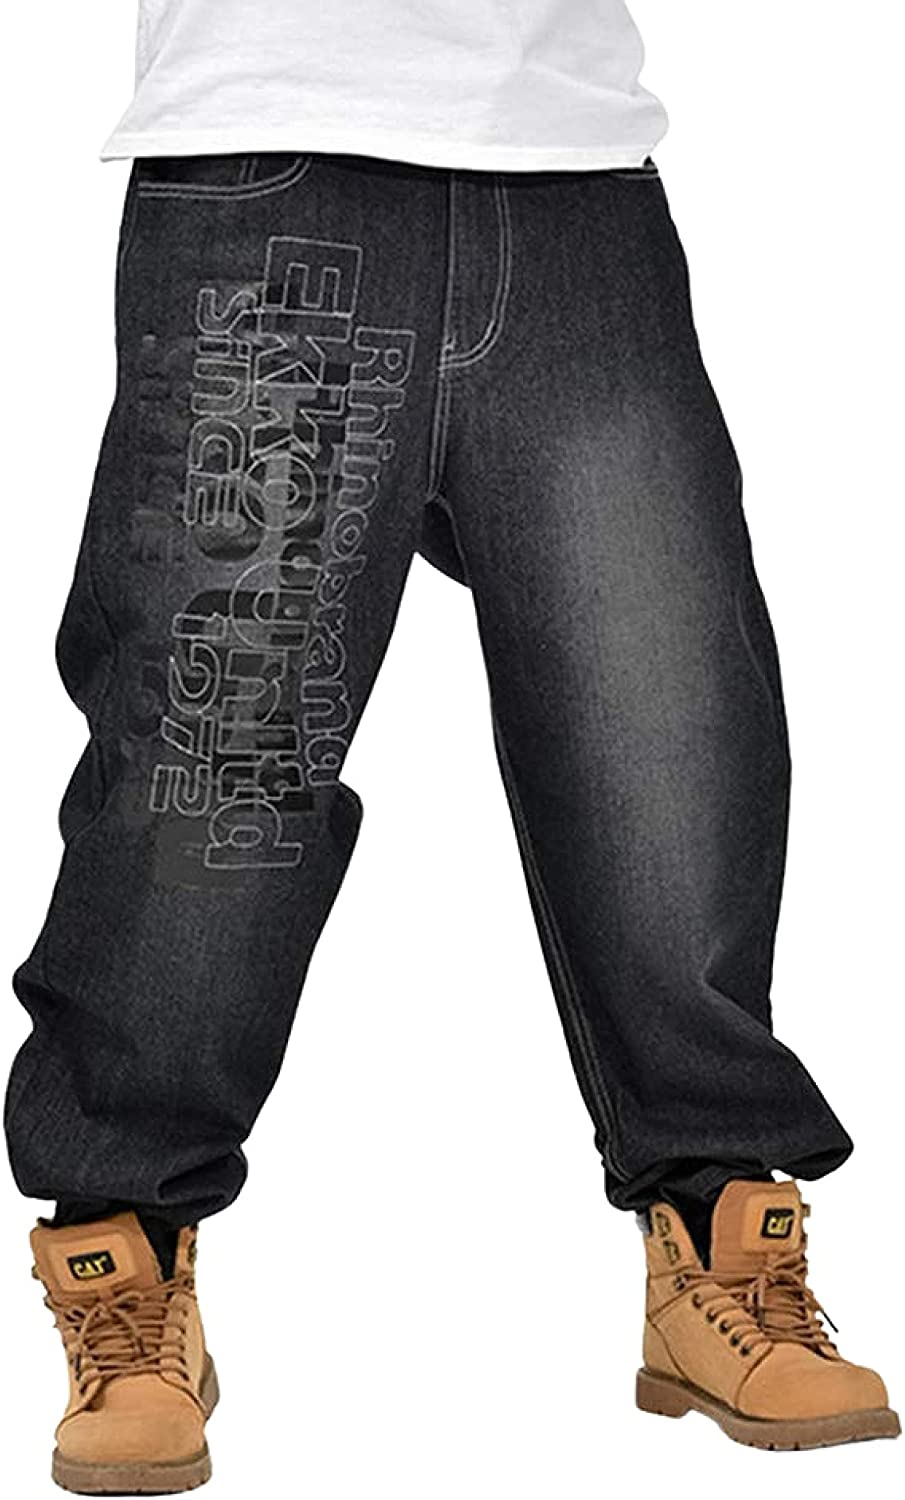 Ruiatoo Loose Fit Jeans for Men Outdoor Classic Baggy Limited time sale Denim Jean Bargain